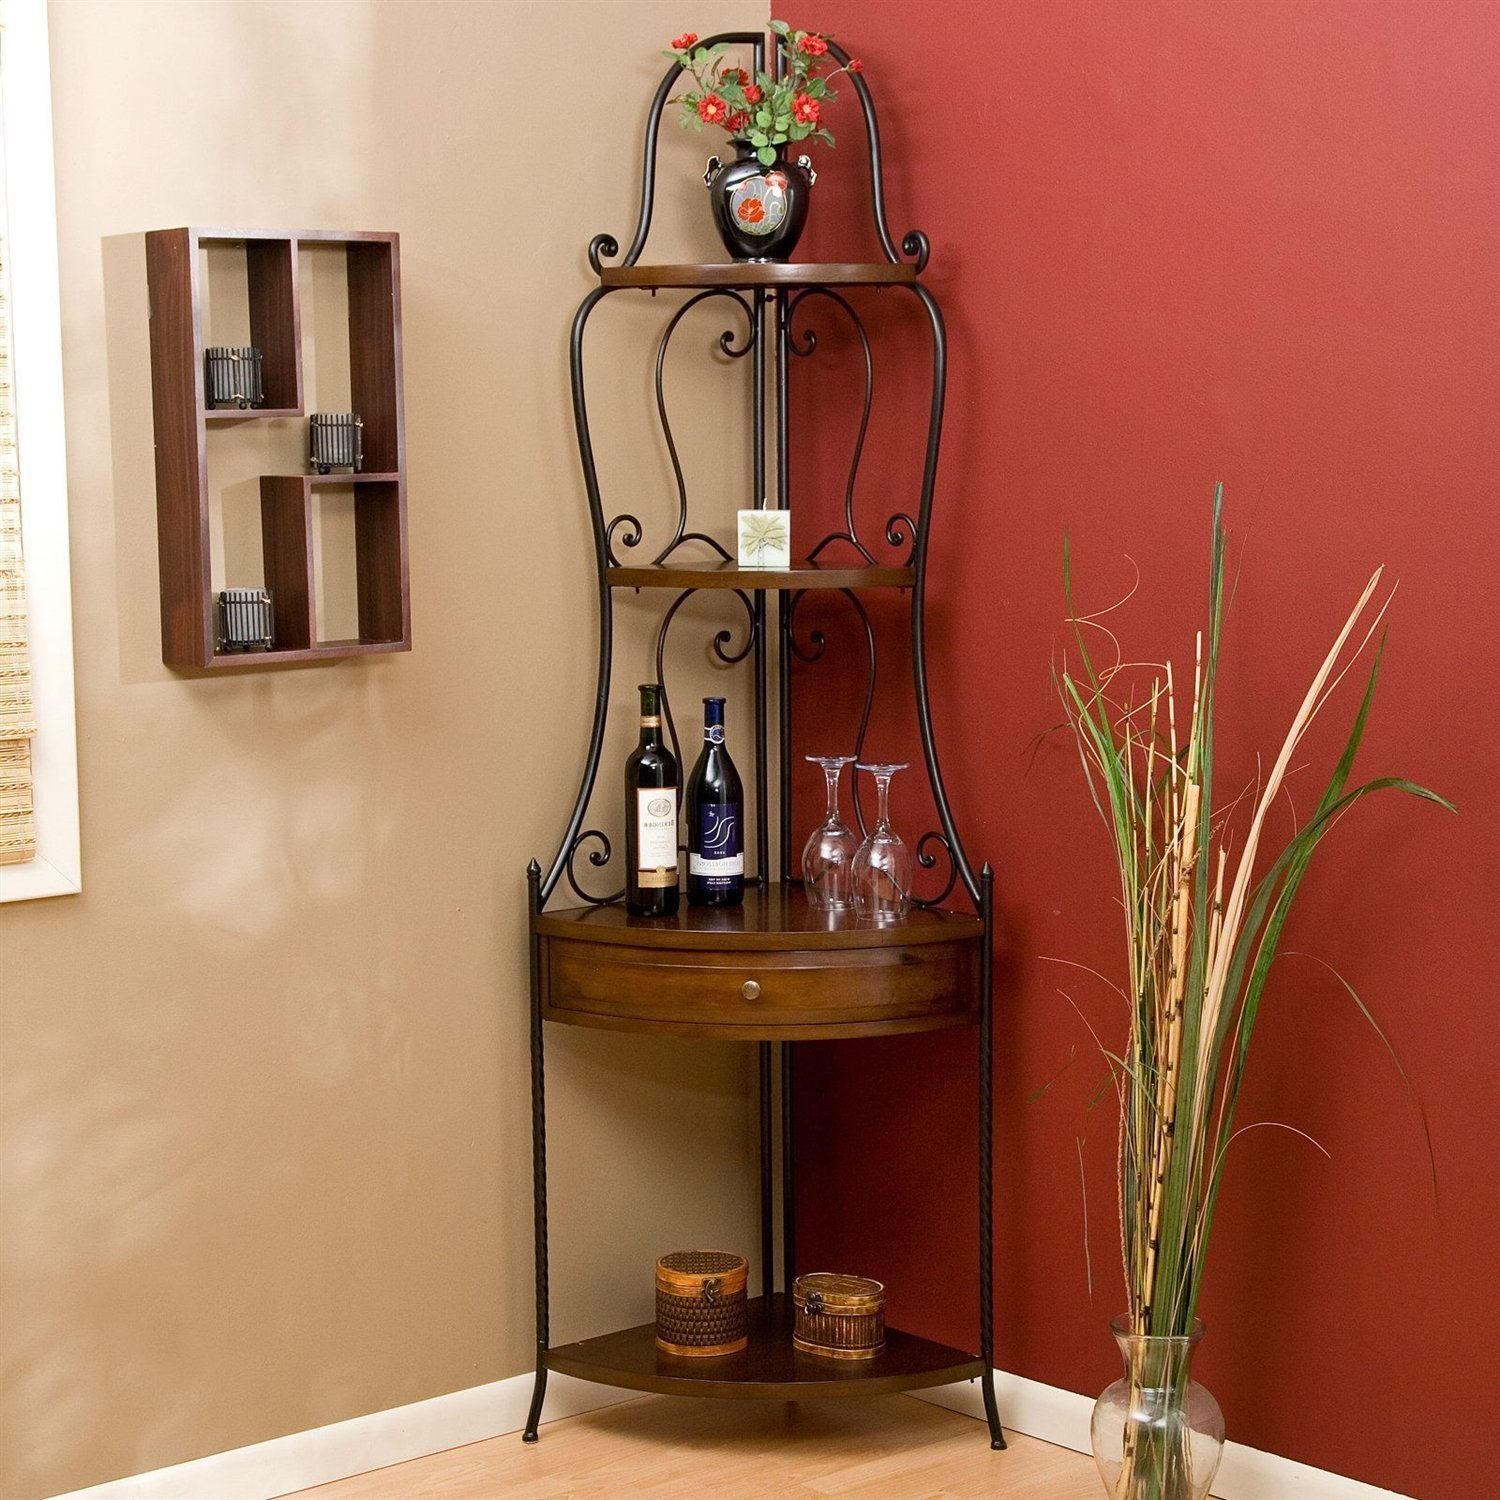 Dining Room Corner Decorating Ideas Space Saving Solutions: Space Saving Corner Bakers Rack With Wrought Iron Frame